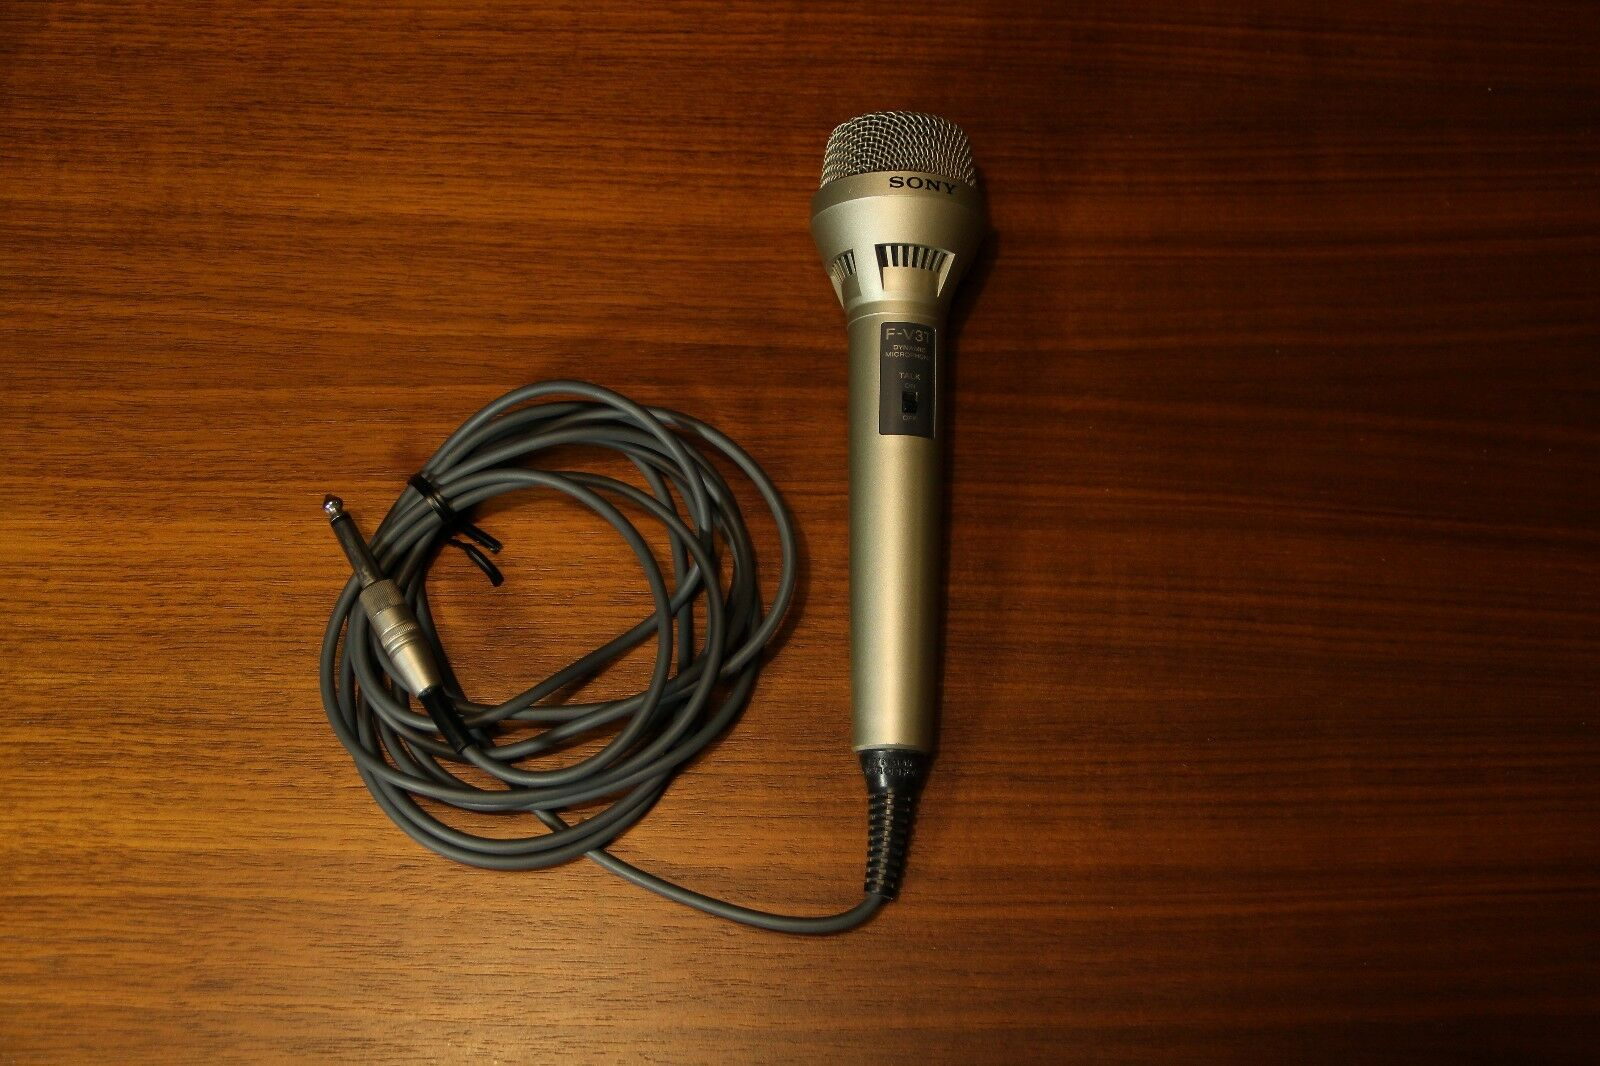 Sony F-V3T Dynamic Microphone with tally on off switch - tested and working